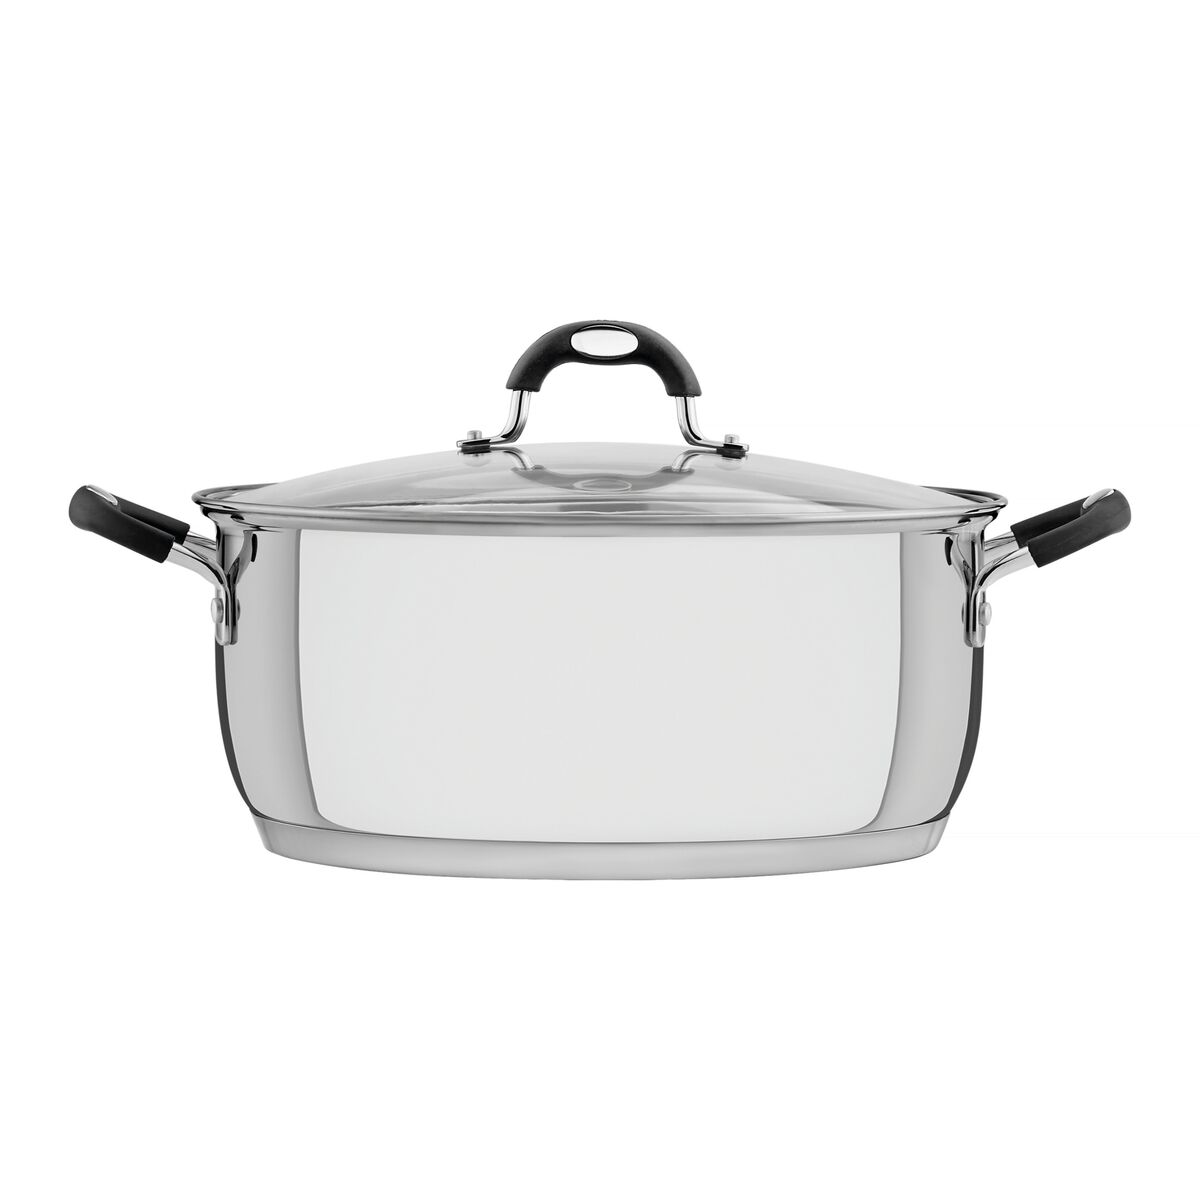 Tramontina Solar Silicone shallow stainless steel casserole dish with tri-ply base and glass lid, 30 cm and 8.9 L